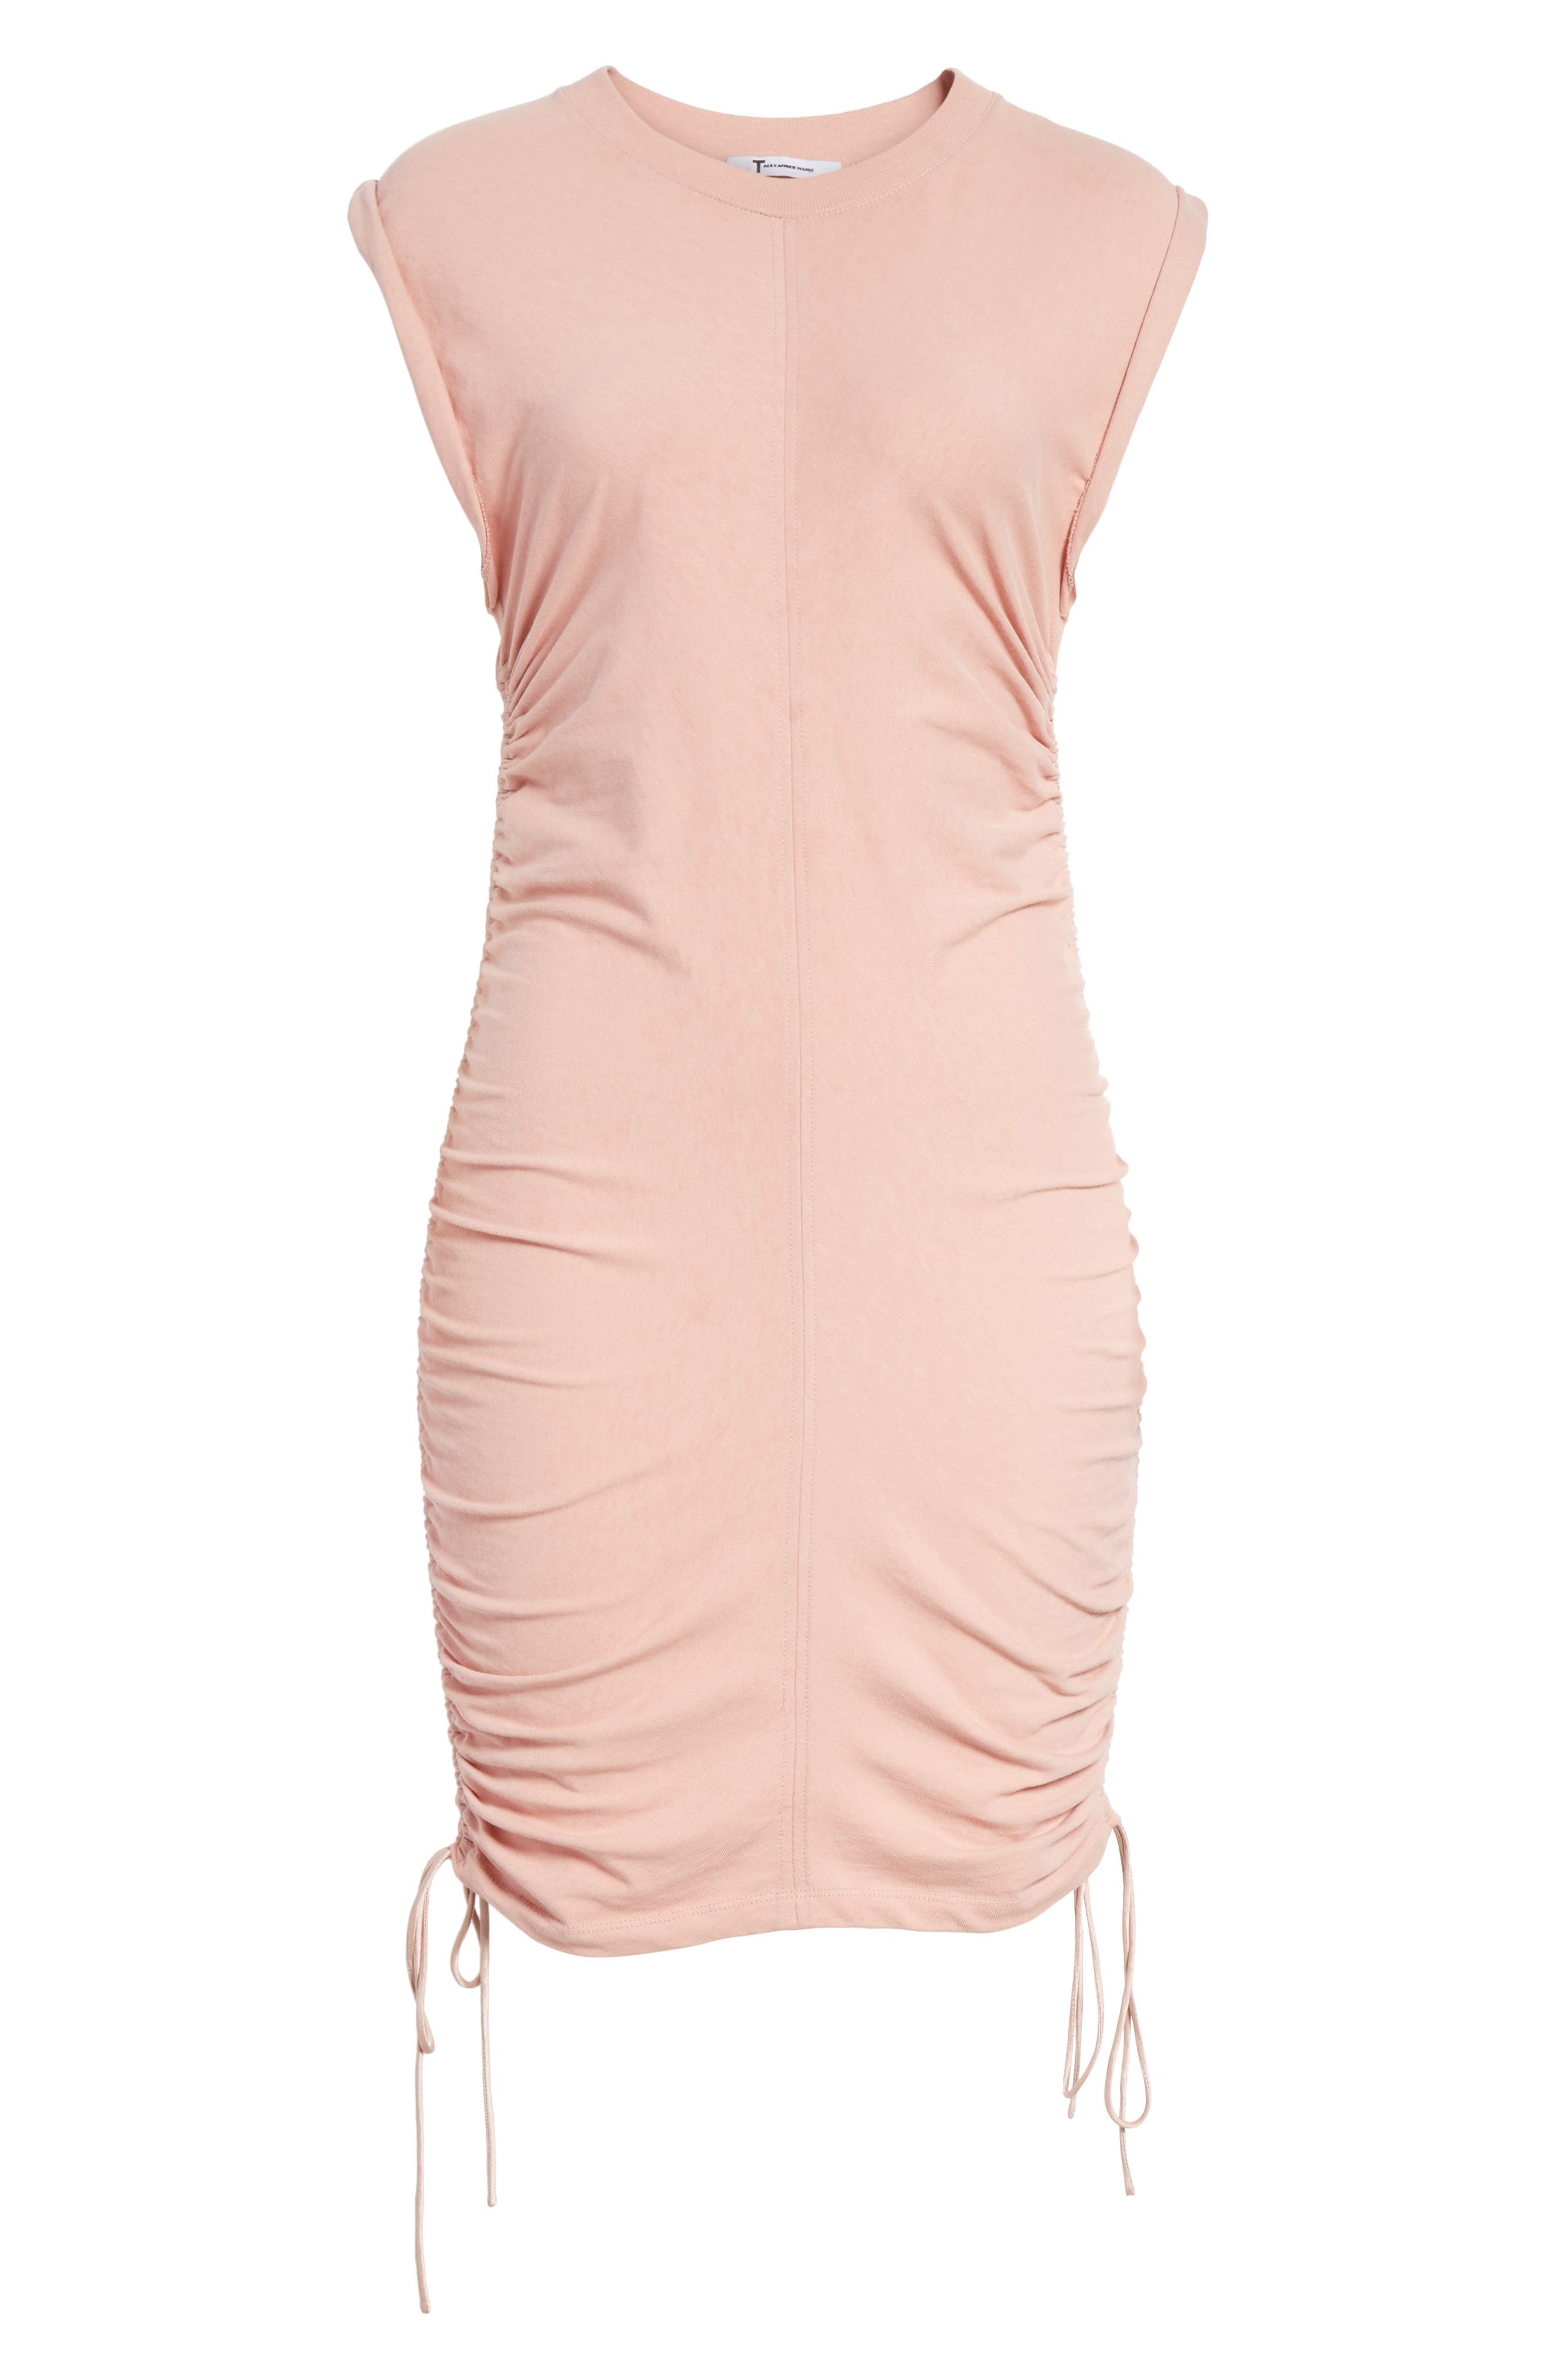 T by Alexander Wang Ruched Jersey Minidress,                             Alternate thumbnail 6, color,                             688